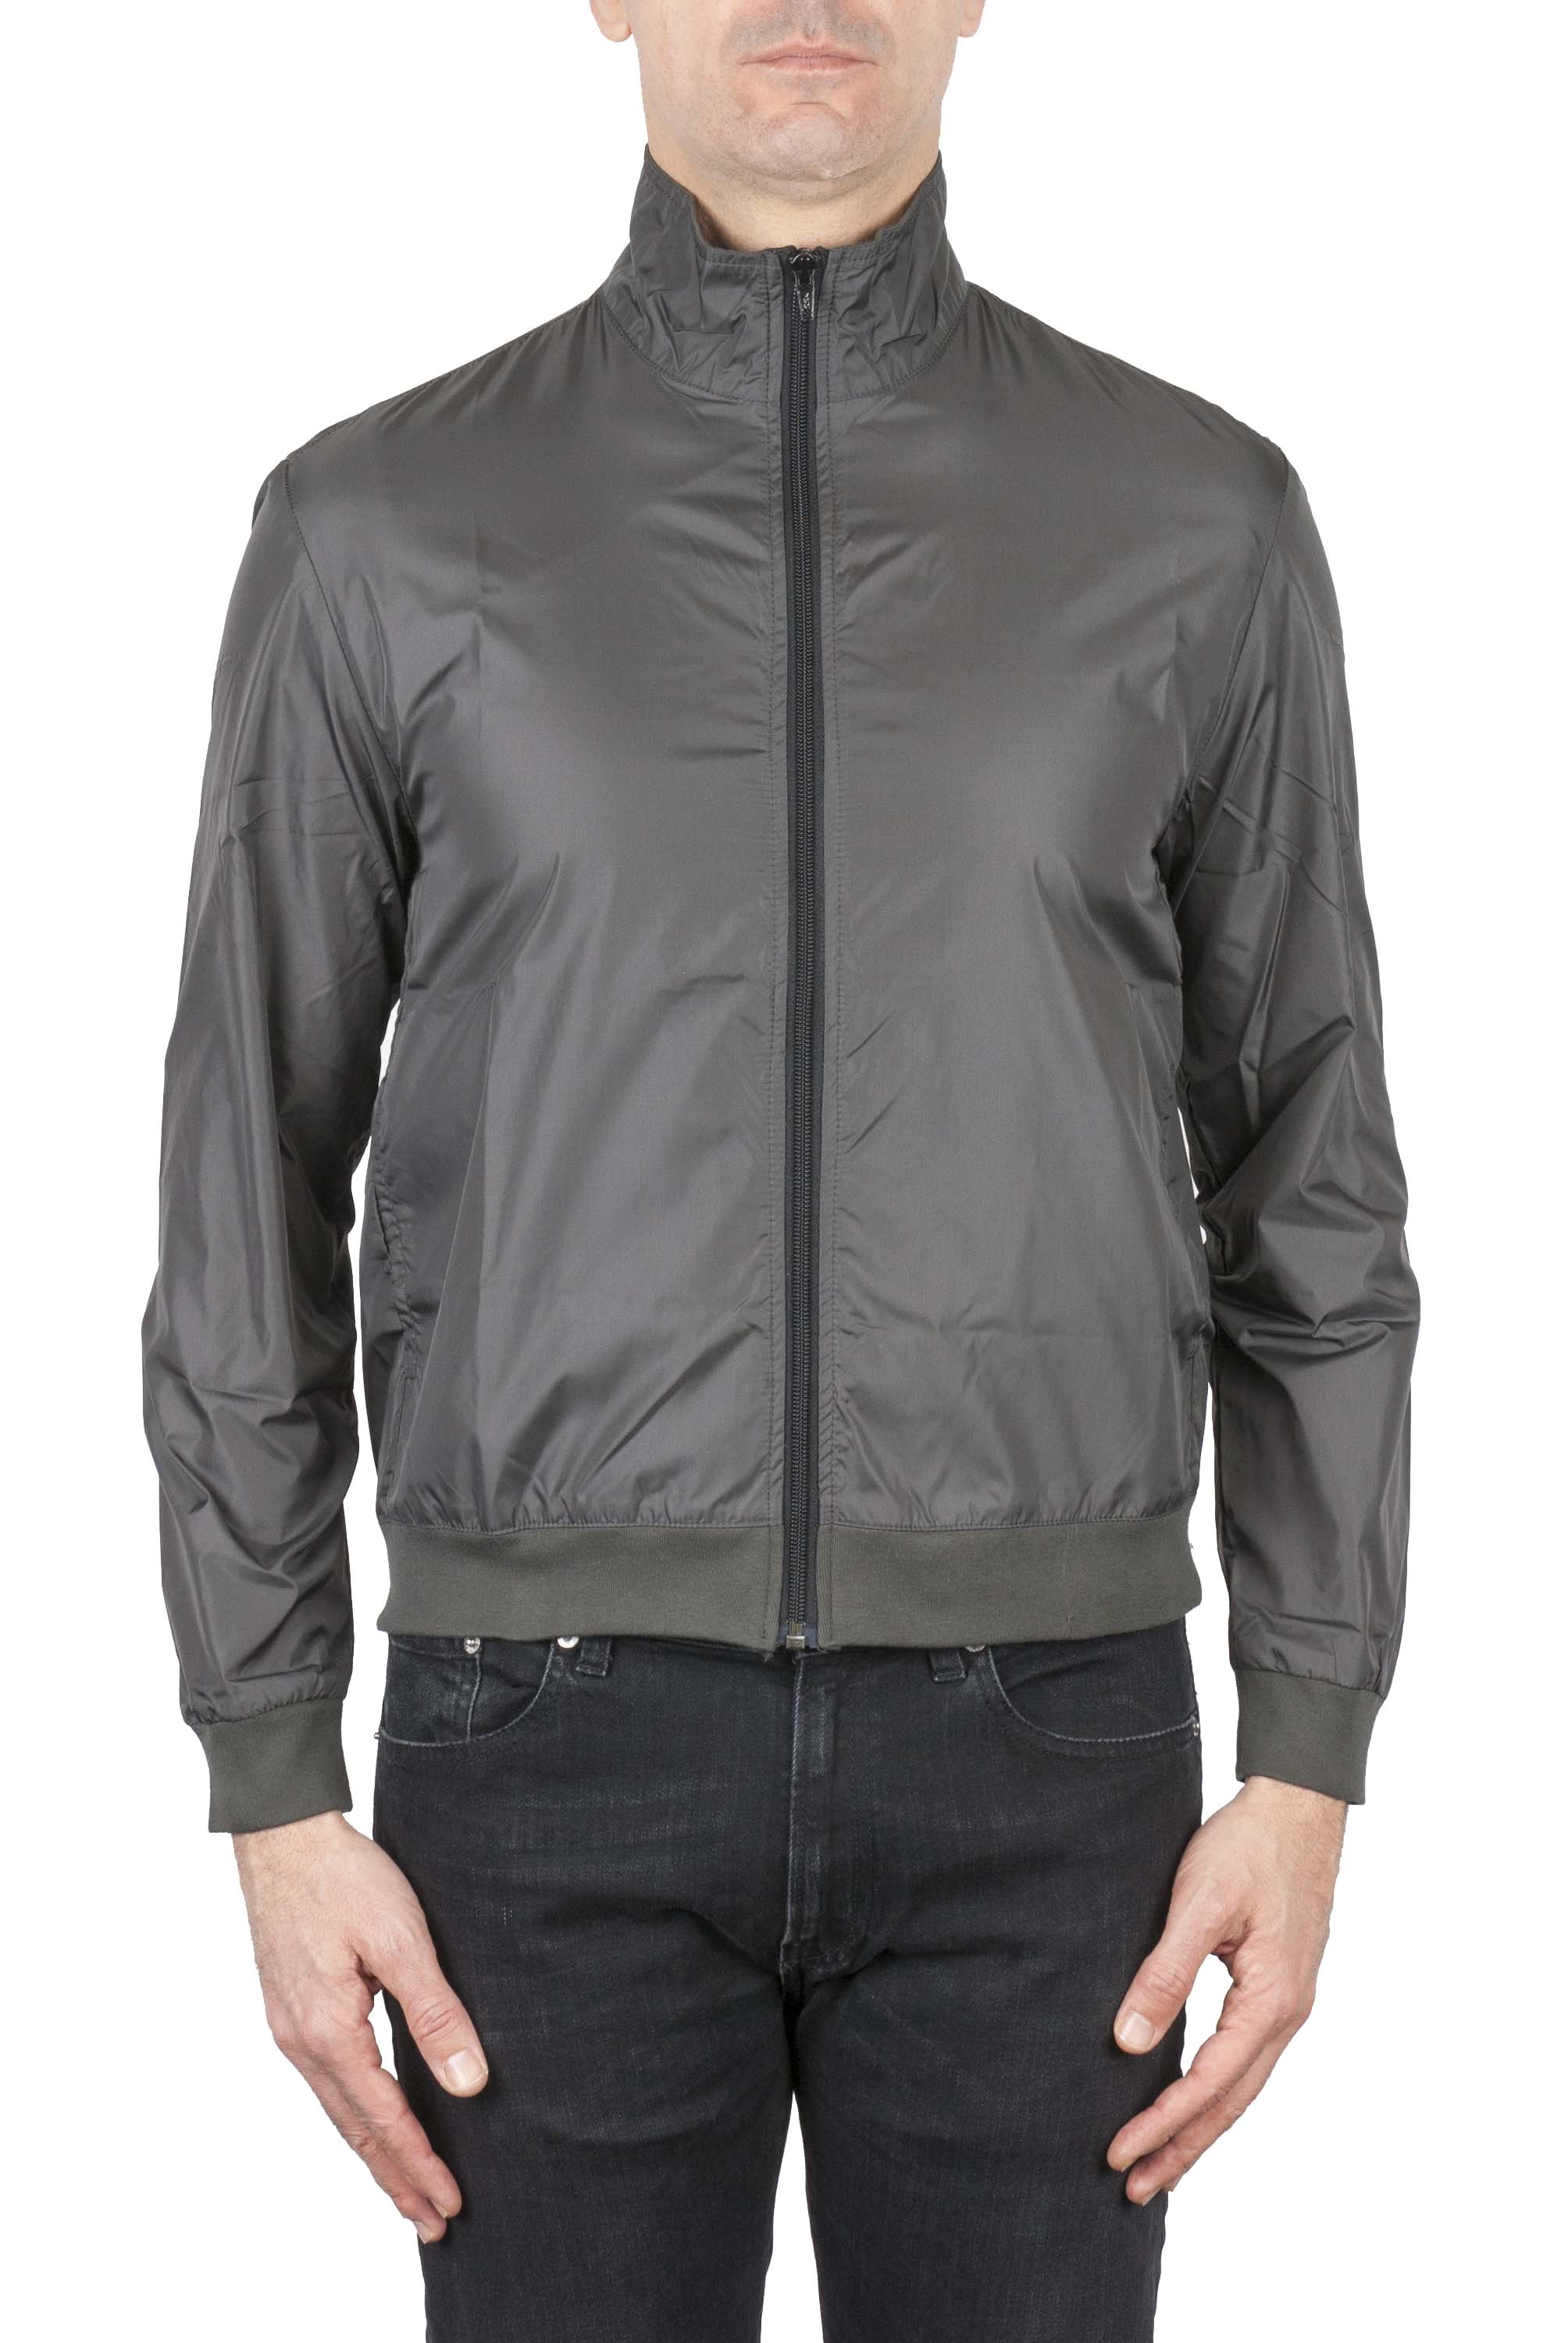 SBU 01564 Windbreaker bomber jacket in grey ultra-lightweight nylon 01